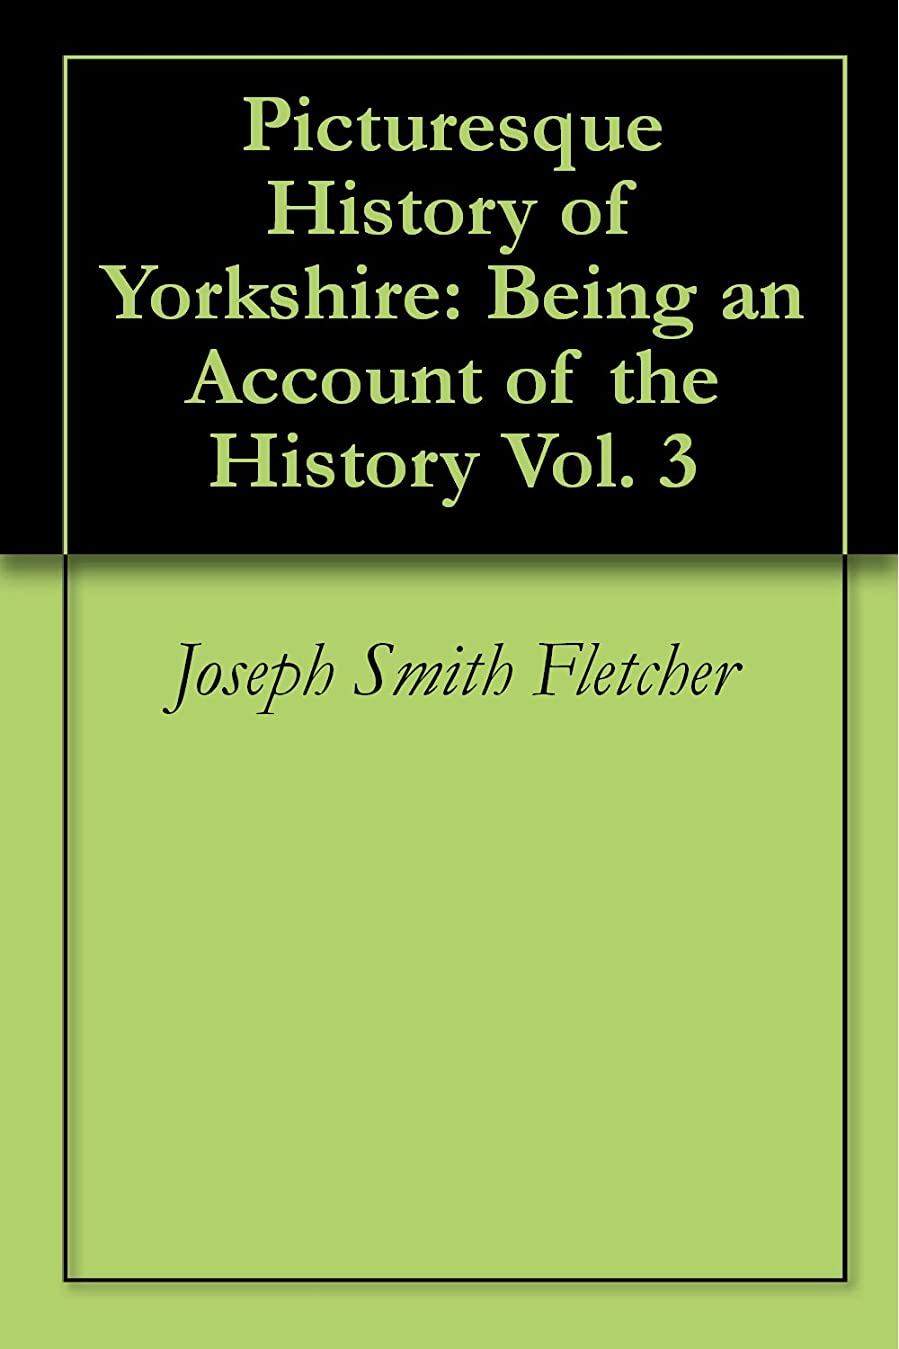 不一致ふくろう転倒Picturesque History of Yorkshire: Being an Account of the History Vol. 3 (English Edition)